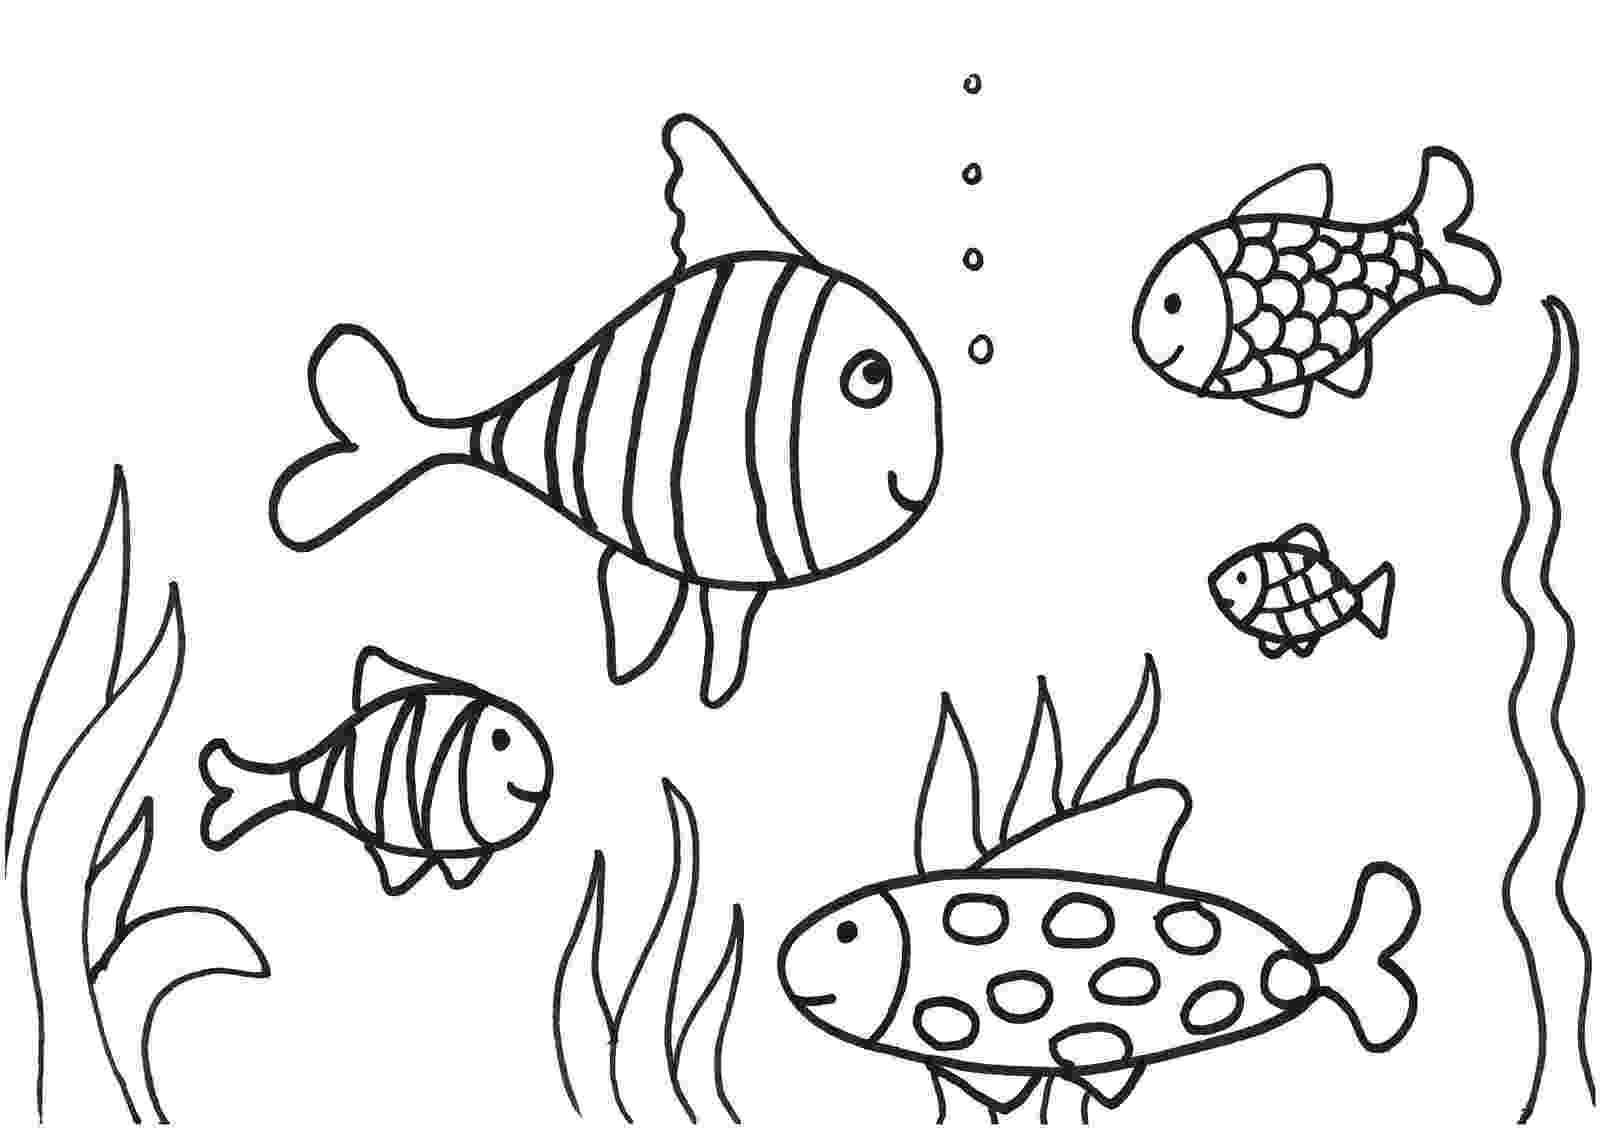 coloring picture fish natchitoches national fish hatchery fish coloring picture